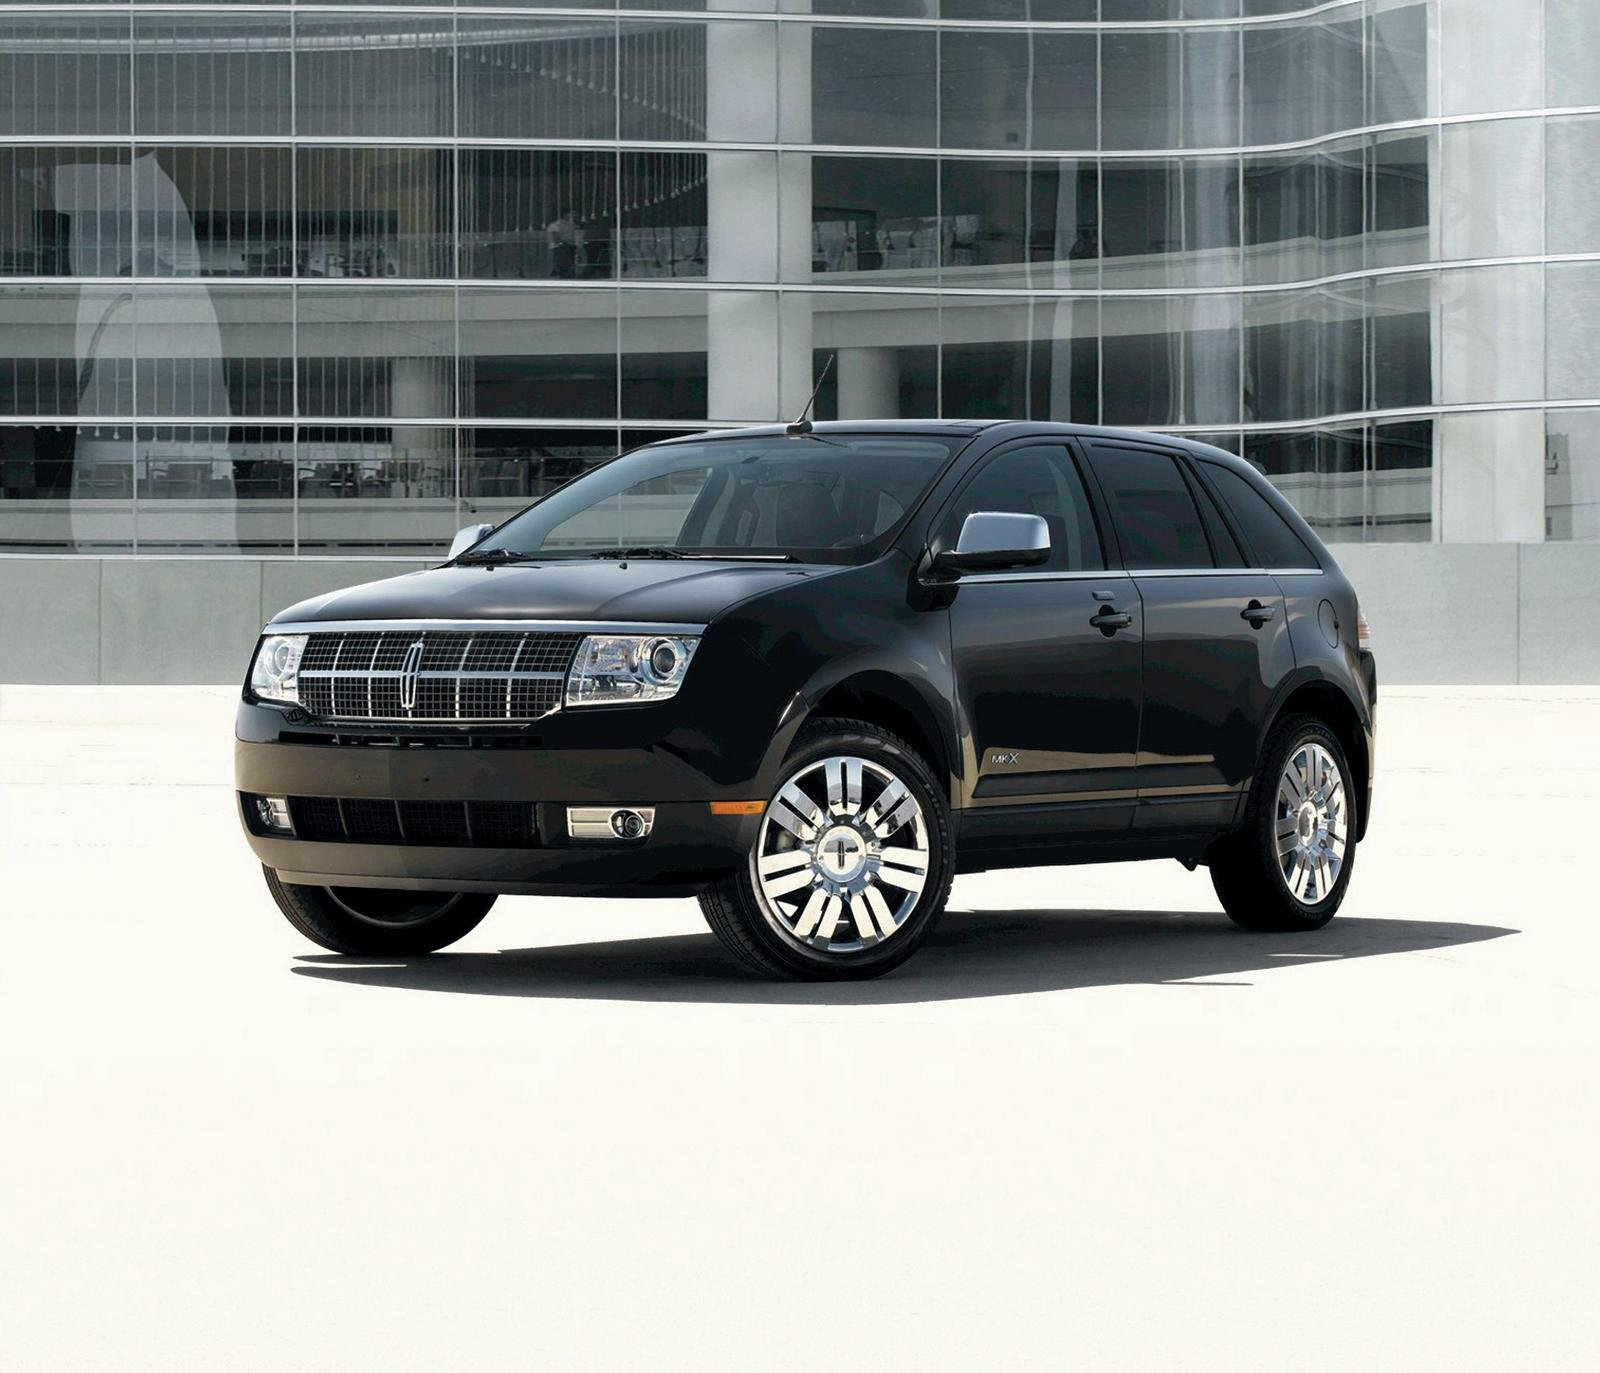 2008 lincoln mkx review top speed. Black Bedroom Furniture Sets. Home Design Ideas